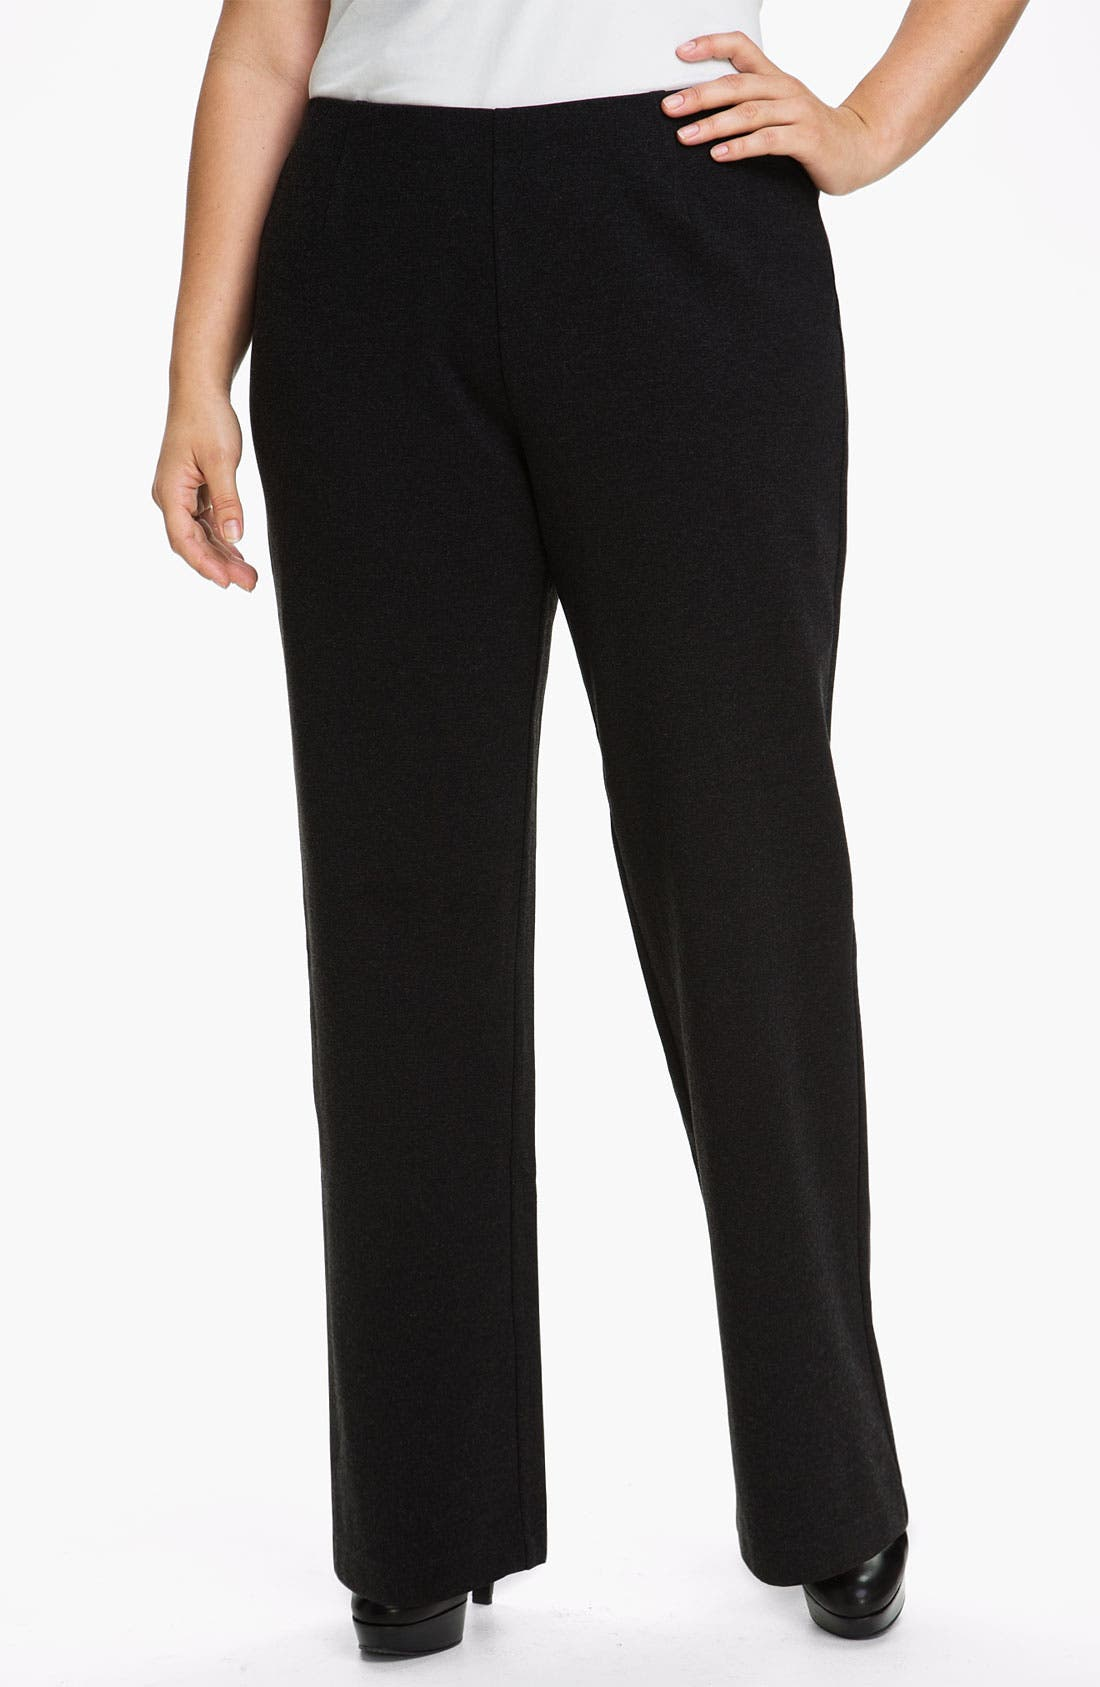 Alternate Image 1 Selected - Eileen Fisher Straight Leg Knit Pants (Plus)